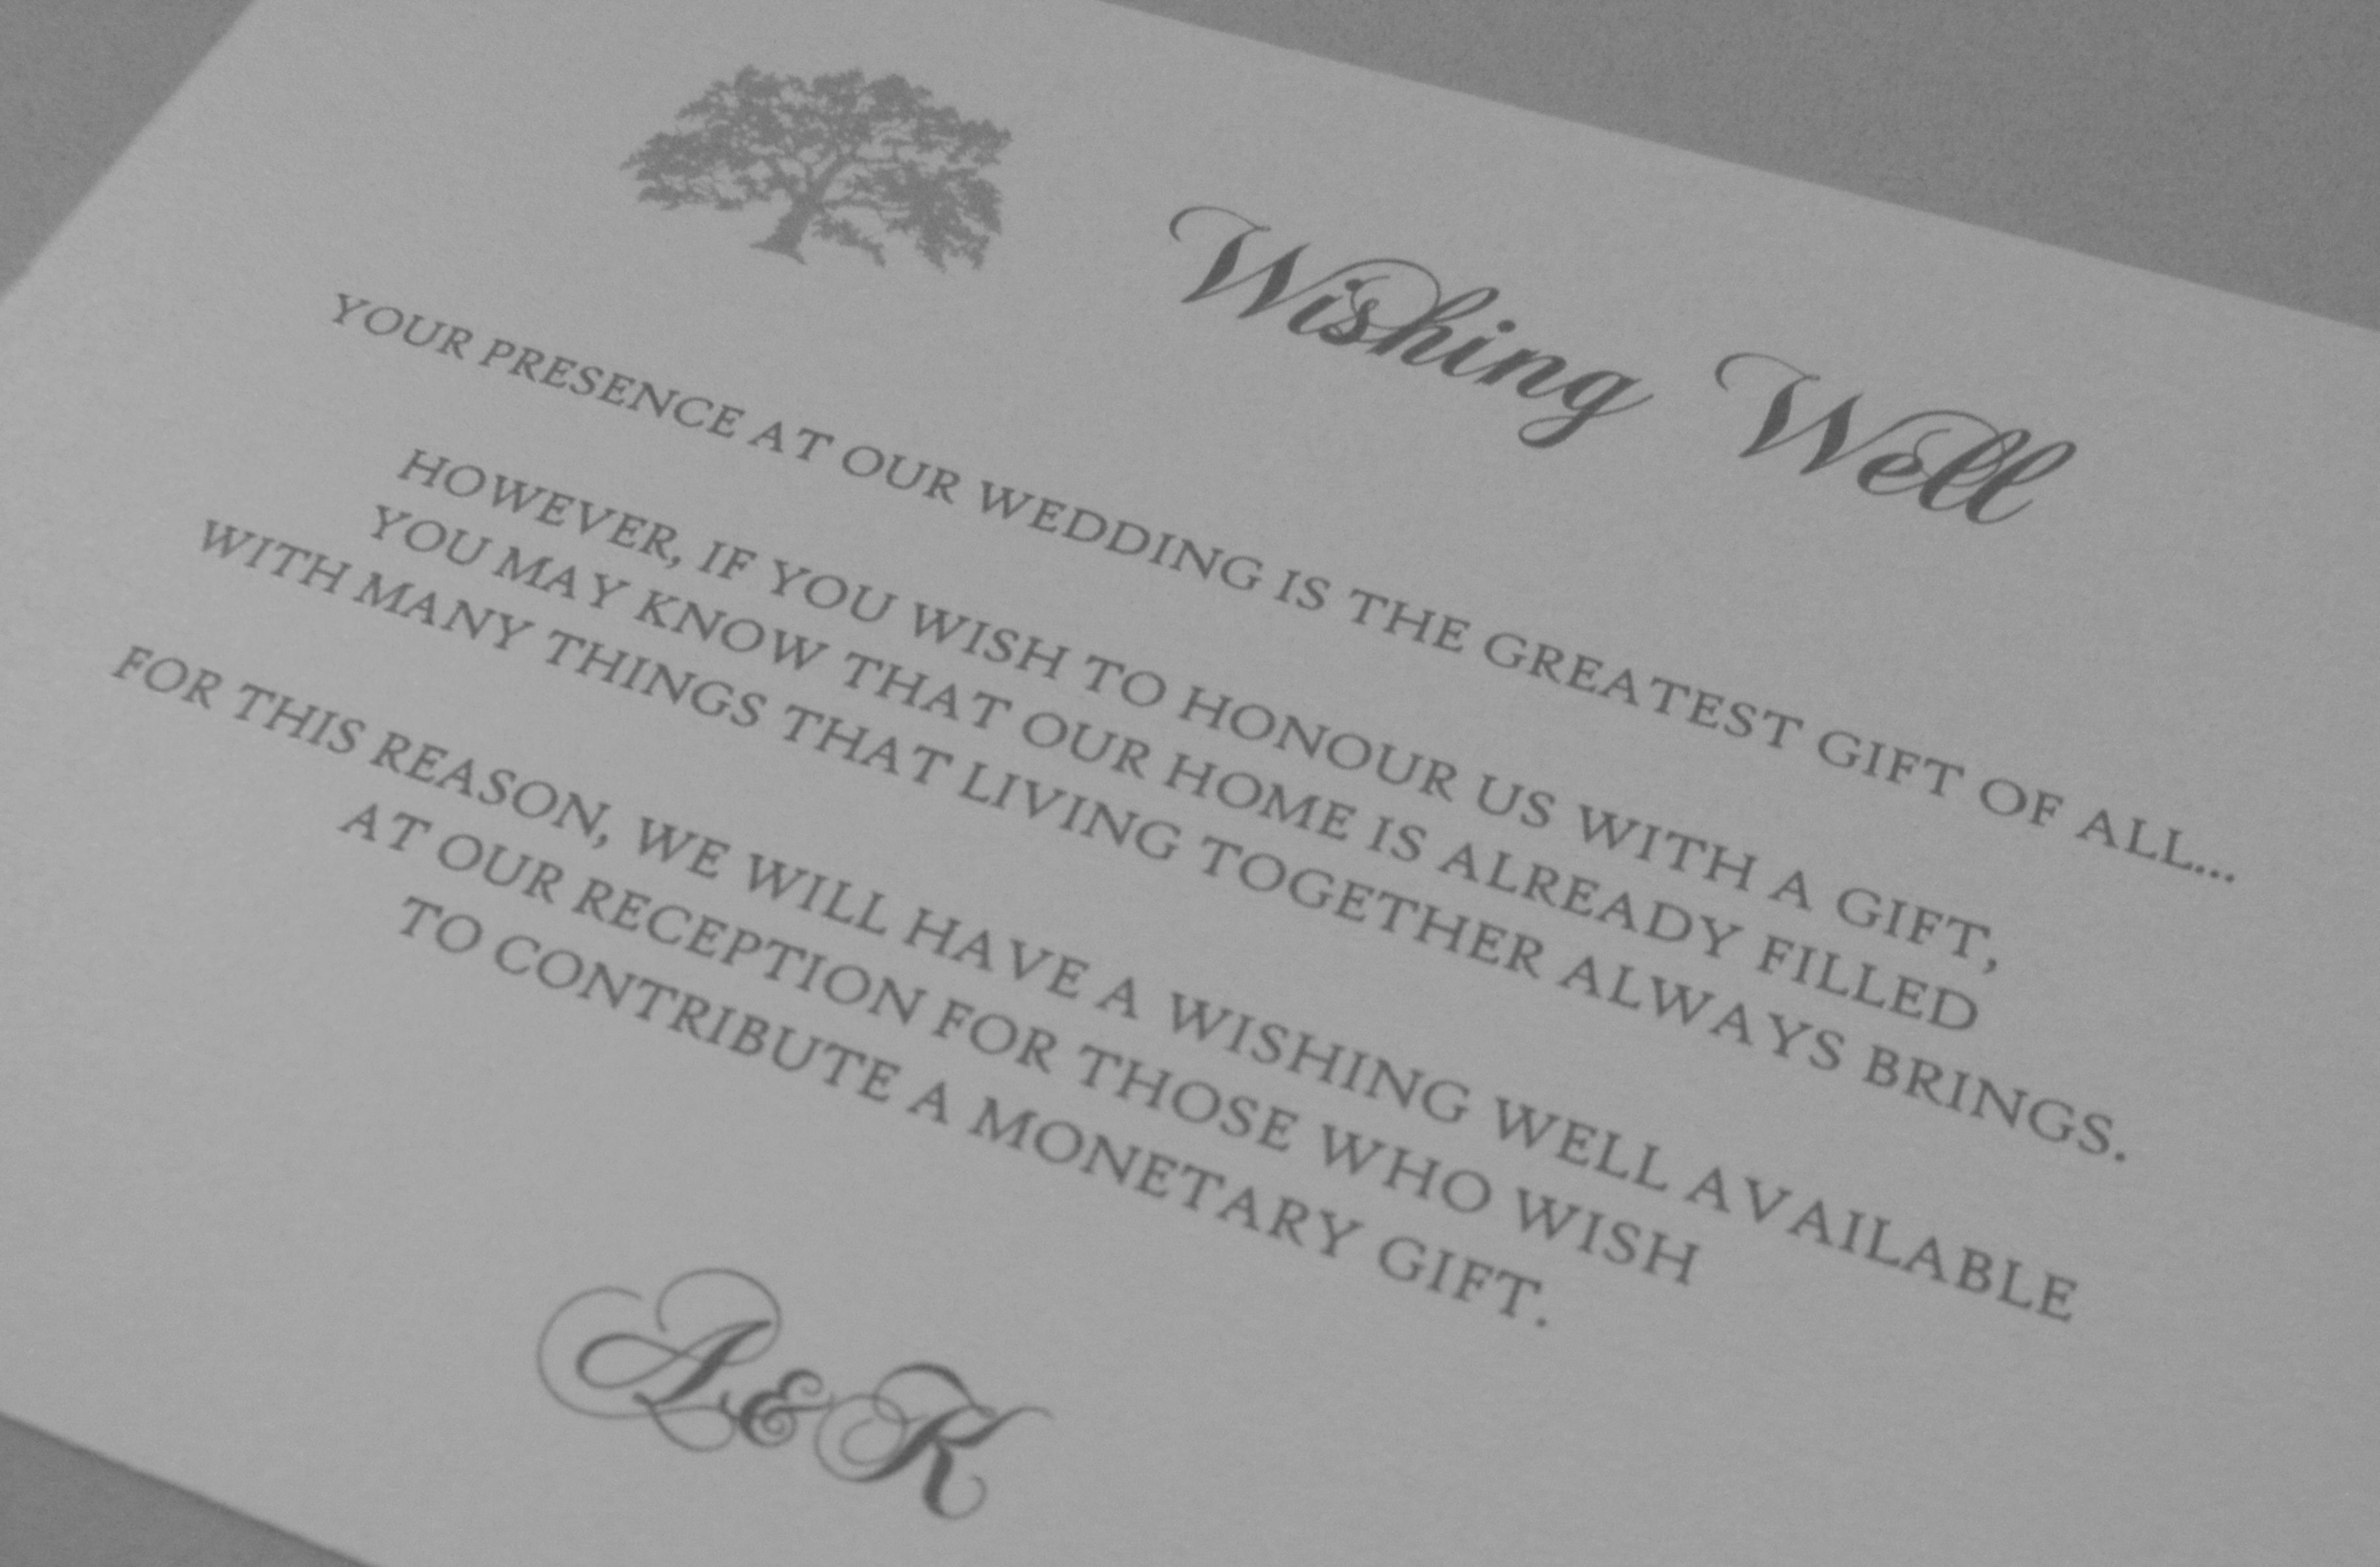 Wedding Gift Wording Ideas: Nice Wording For Those Who Are Ok With Requesting Monetary